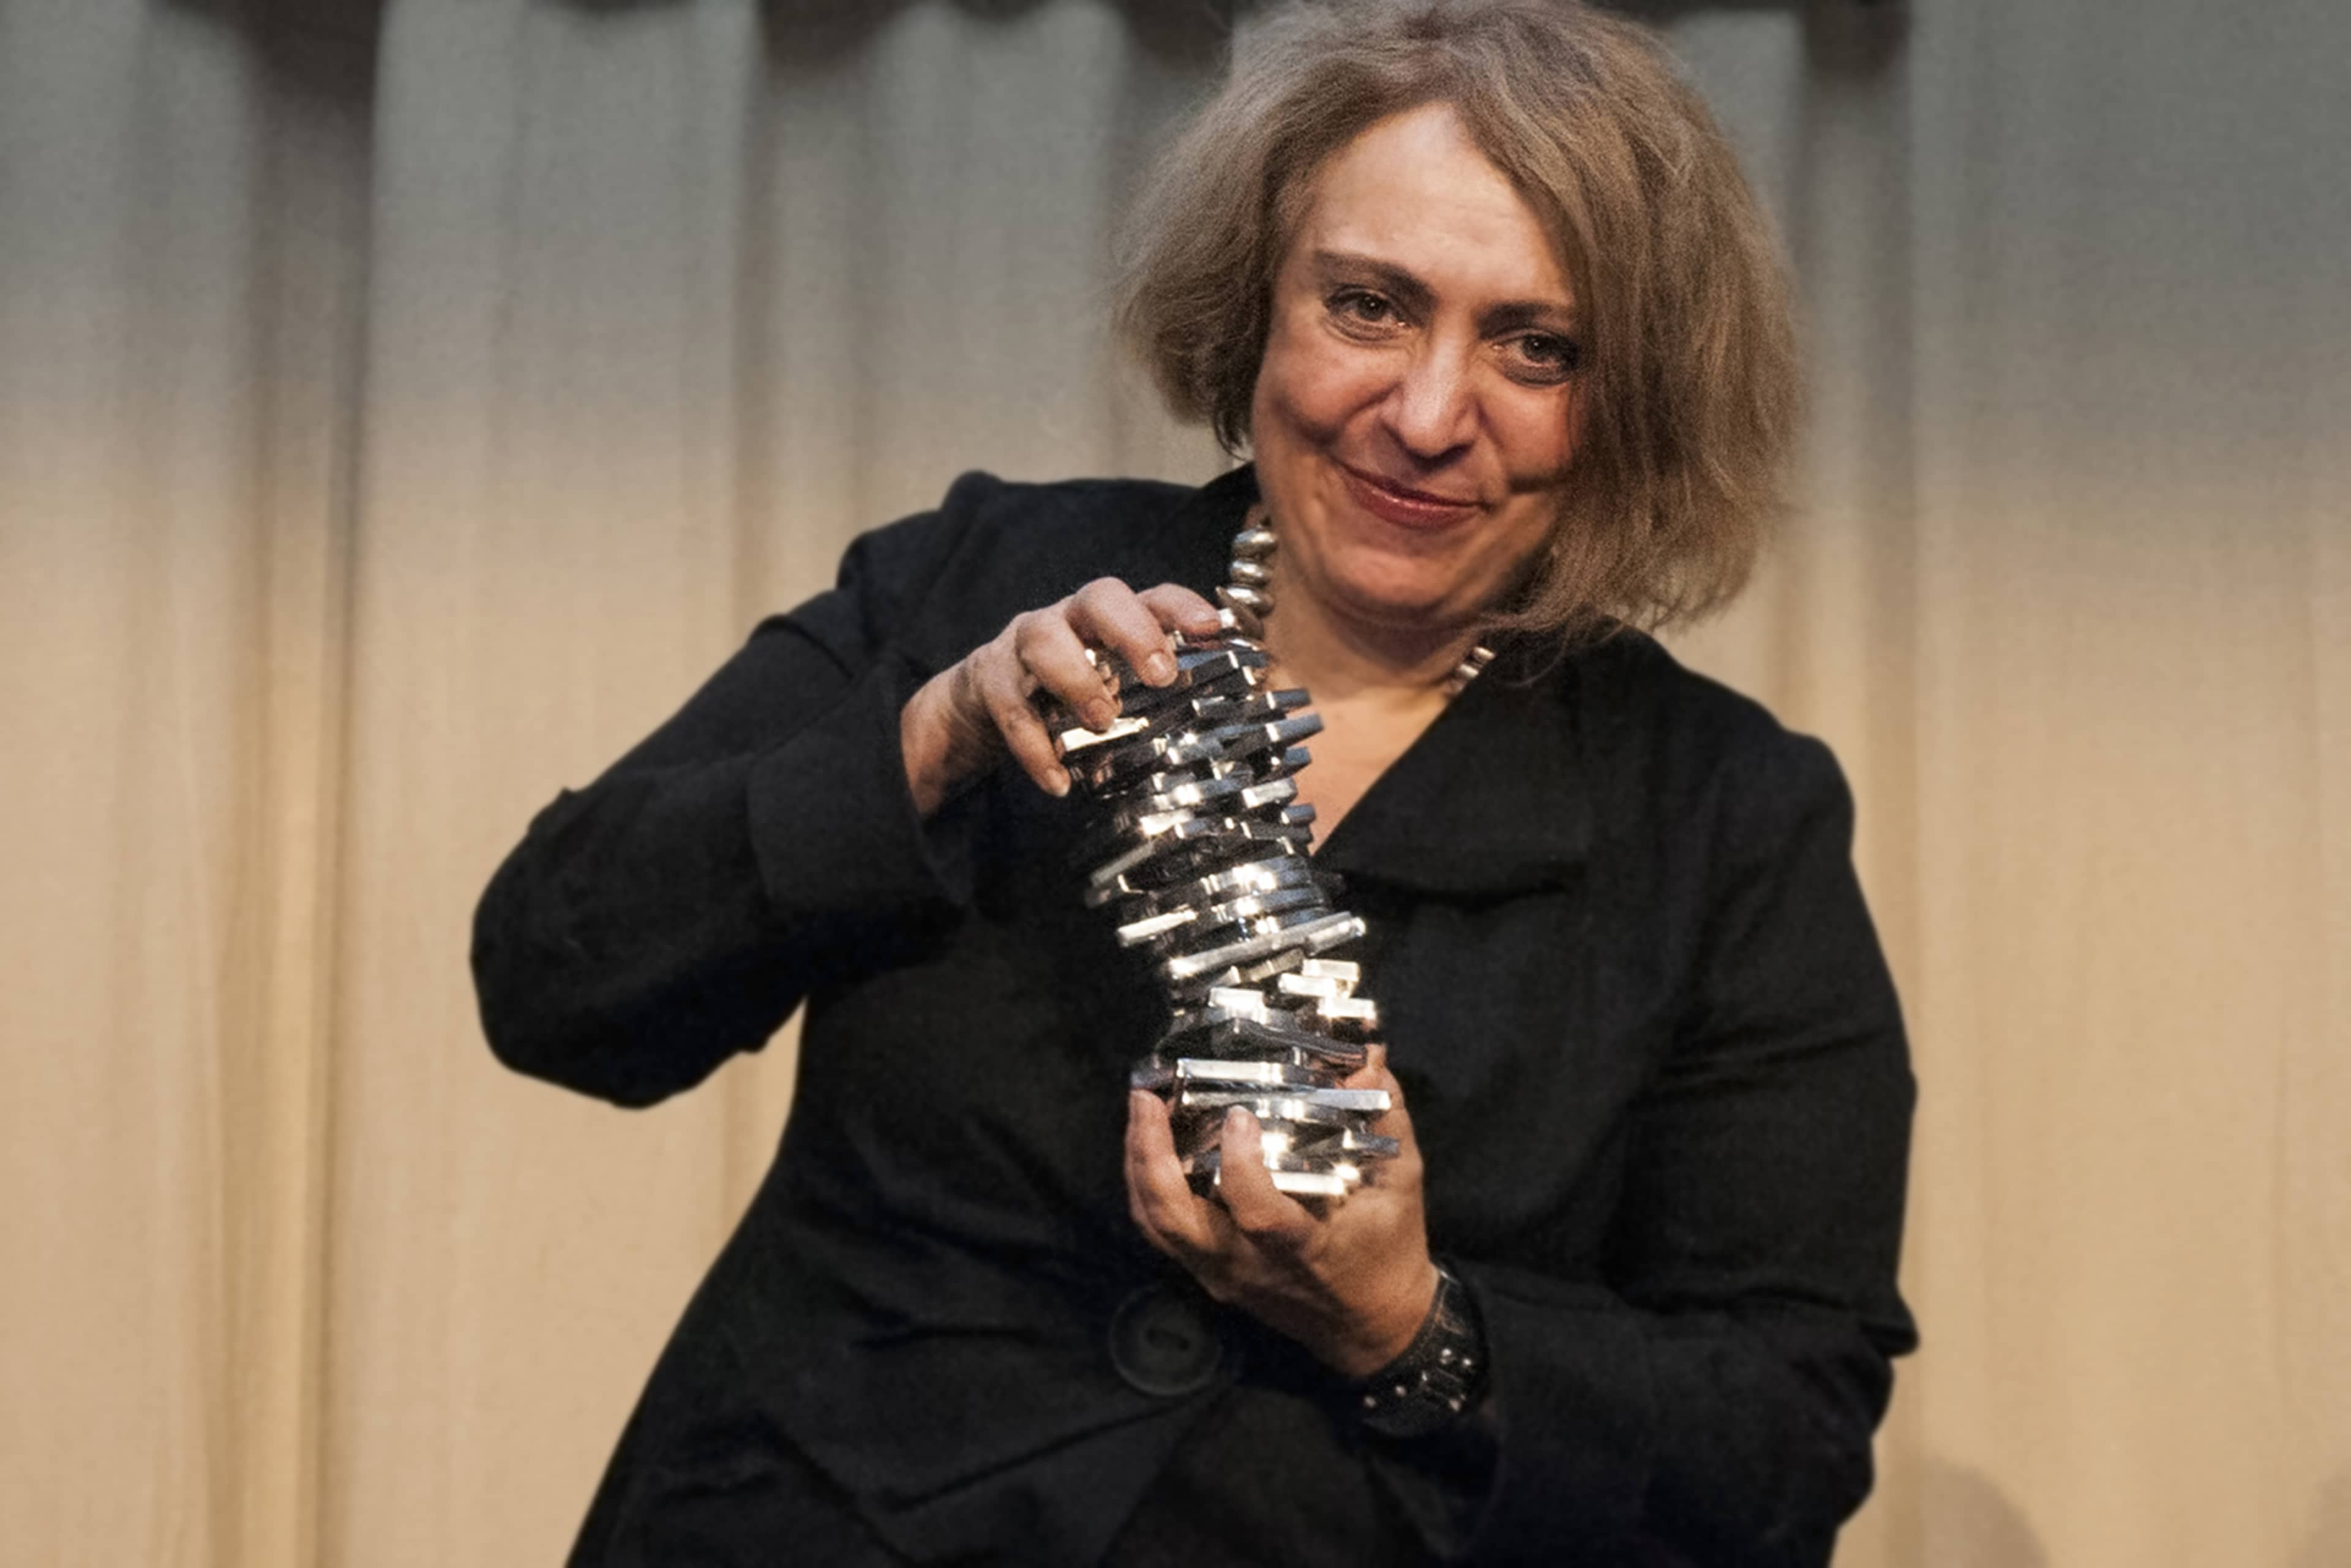 Ekaterina Degot, winner of the Igor Zabel Award for Culture and Theory 2014